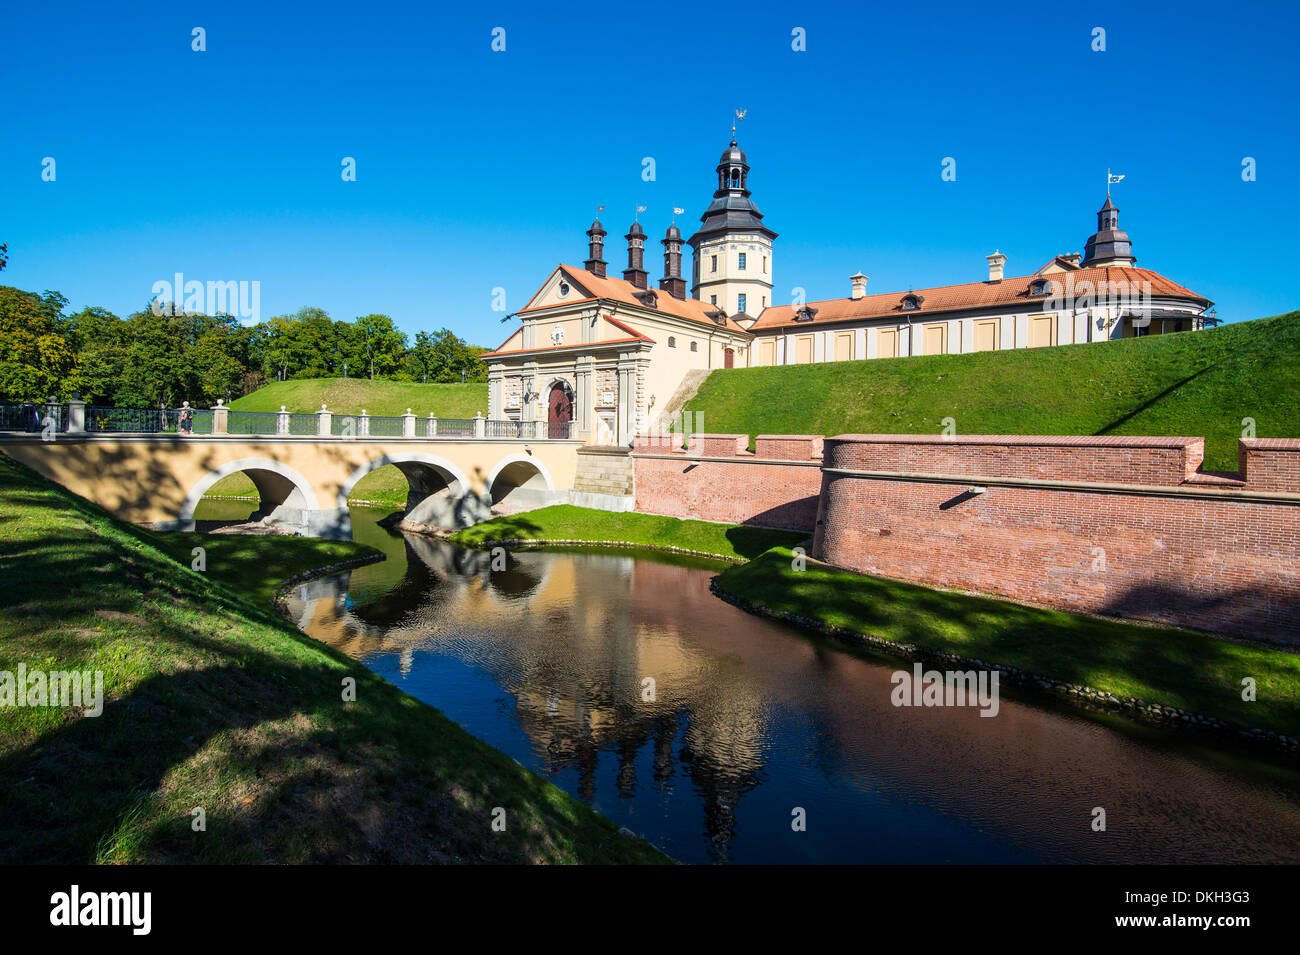 Nesvizh Castle, UNESCO World Heritage Site, Belarus, Europe - Stock Image